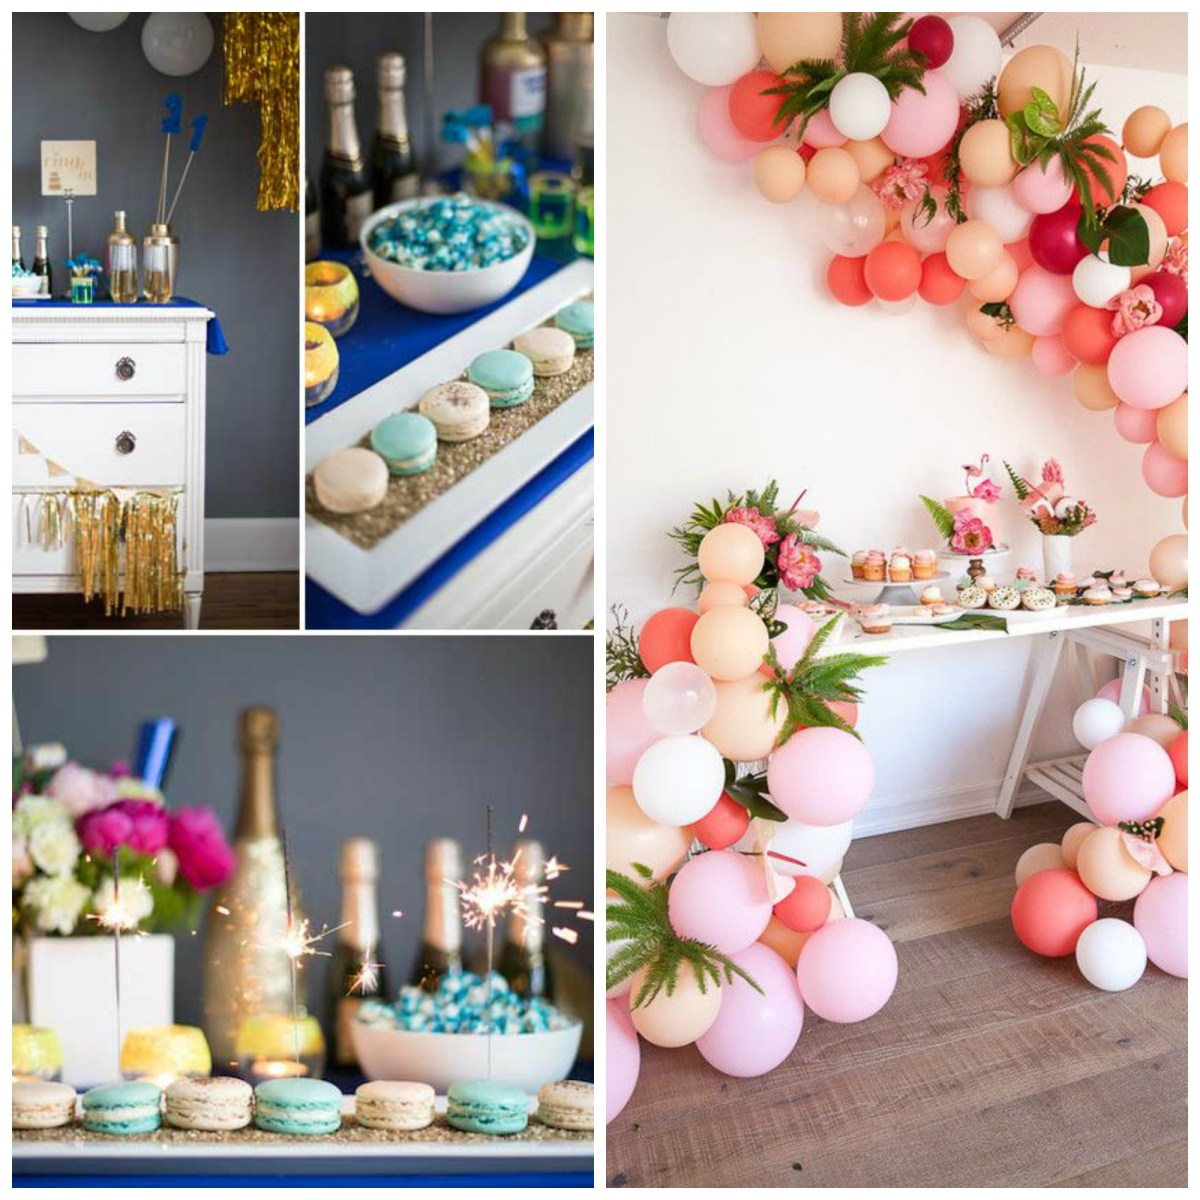 11 Almost-Free DIY Party Decor Ideas